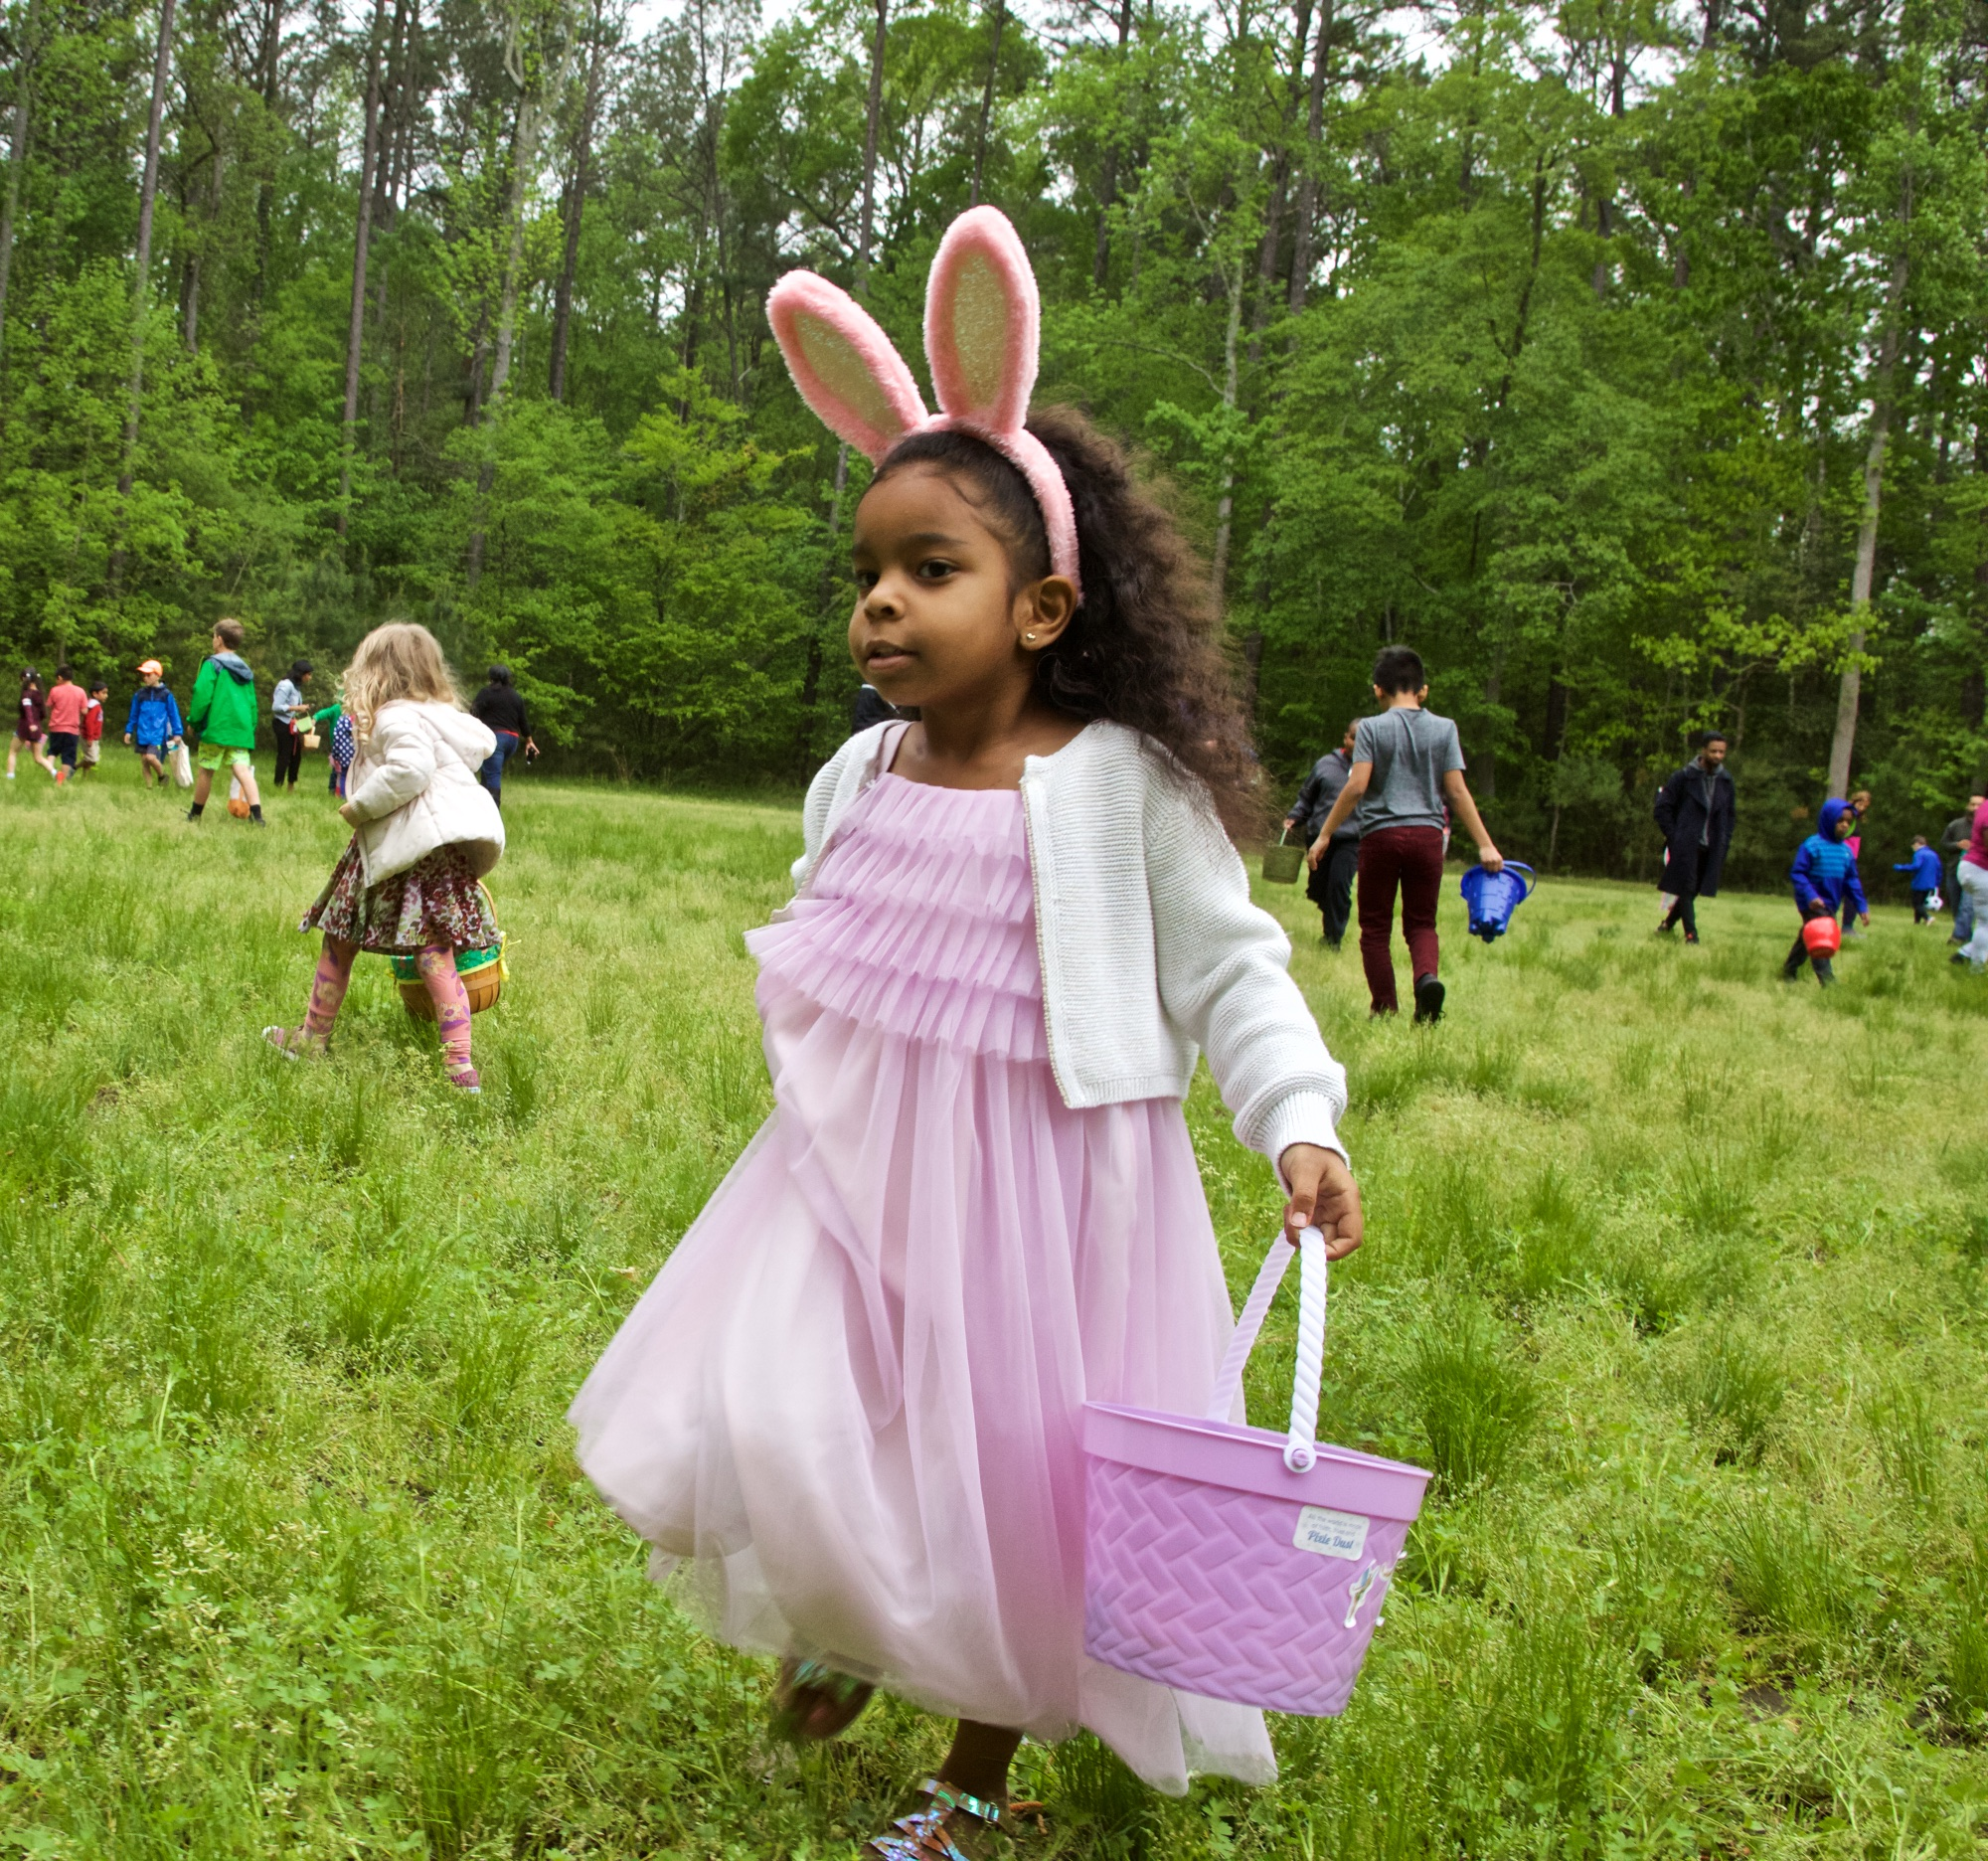 2019.4.20 Raleigh NPHC Easter Egg Hunt by StanChambersJr Photography 33.jpg